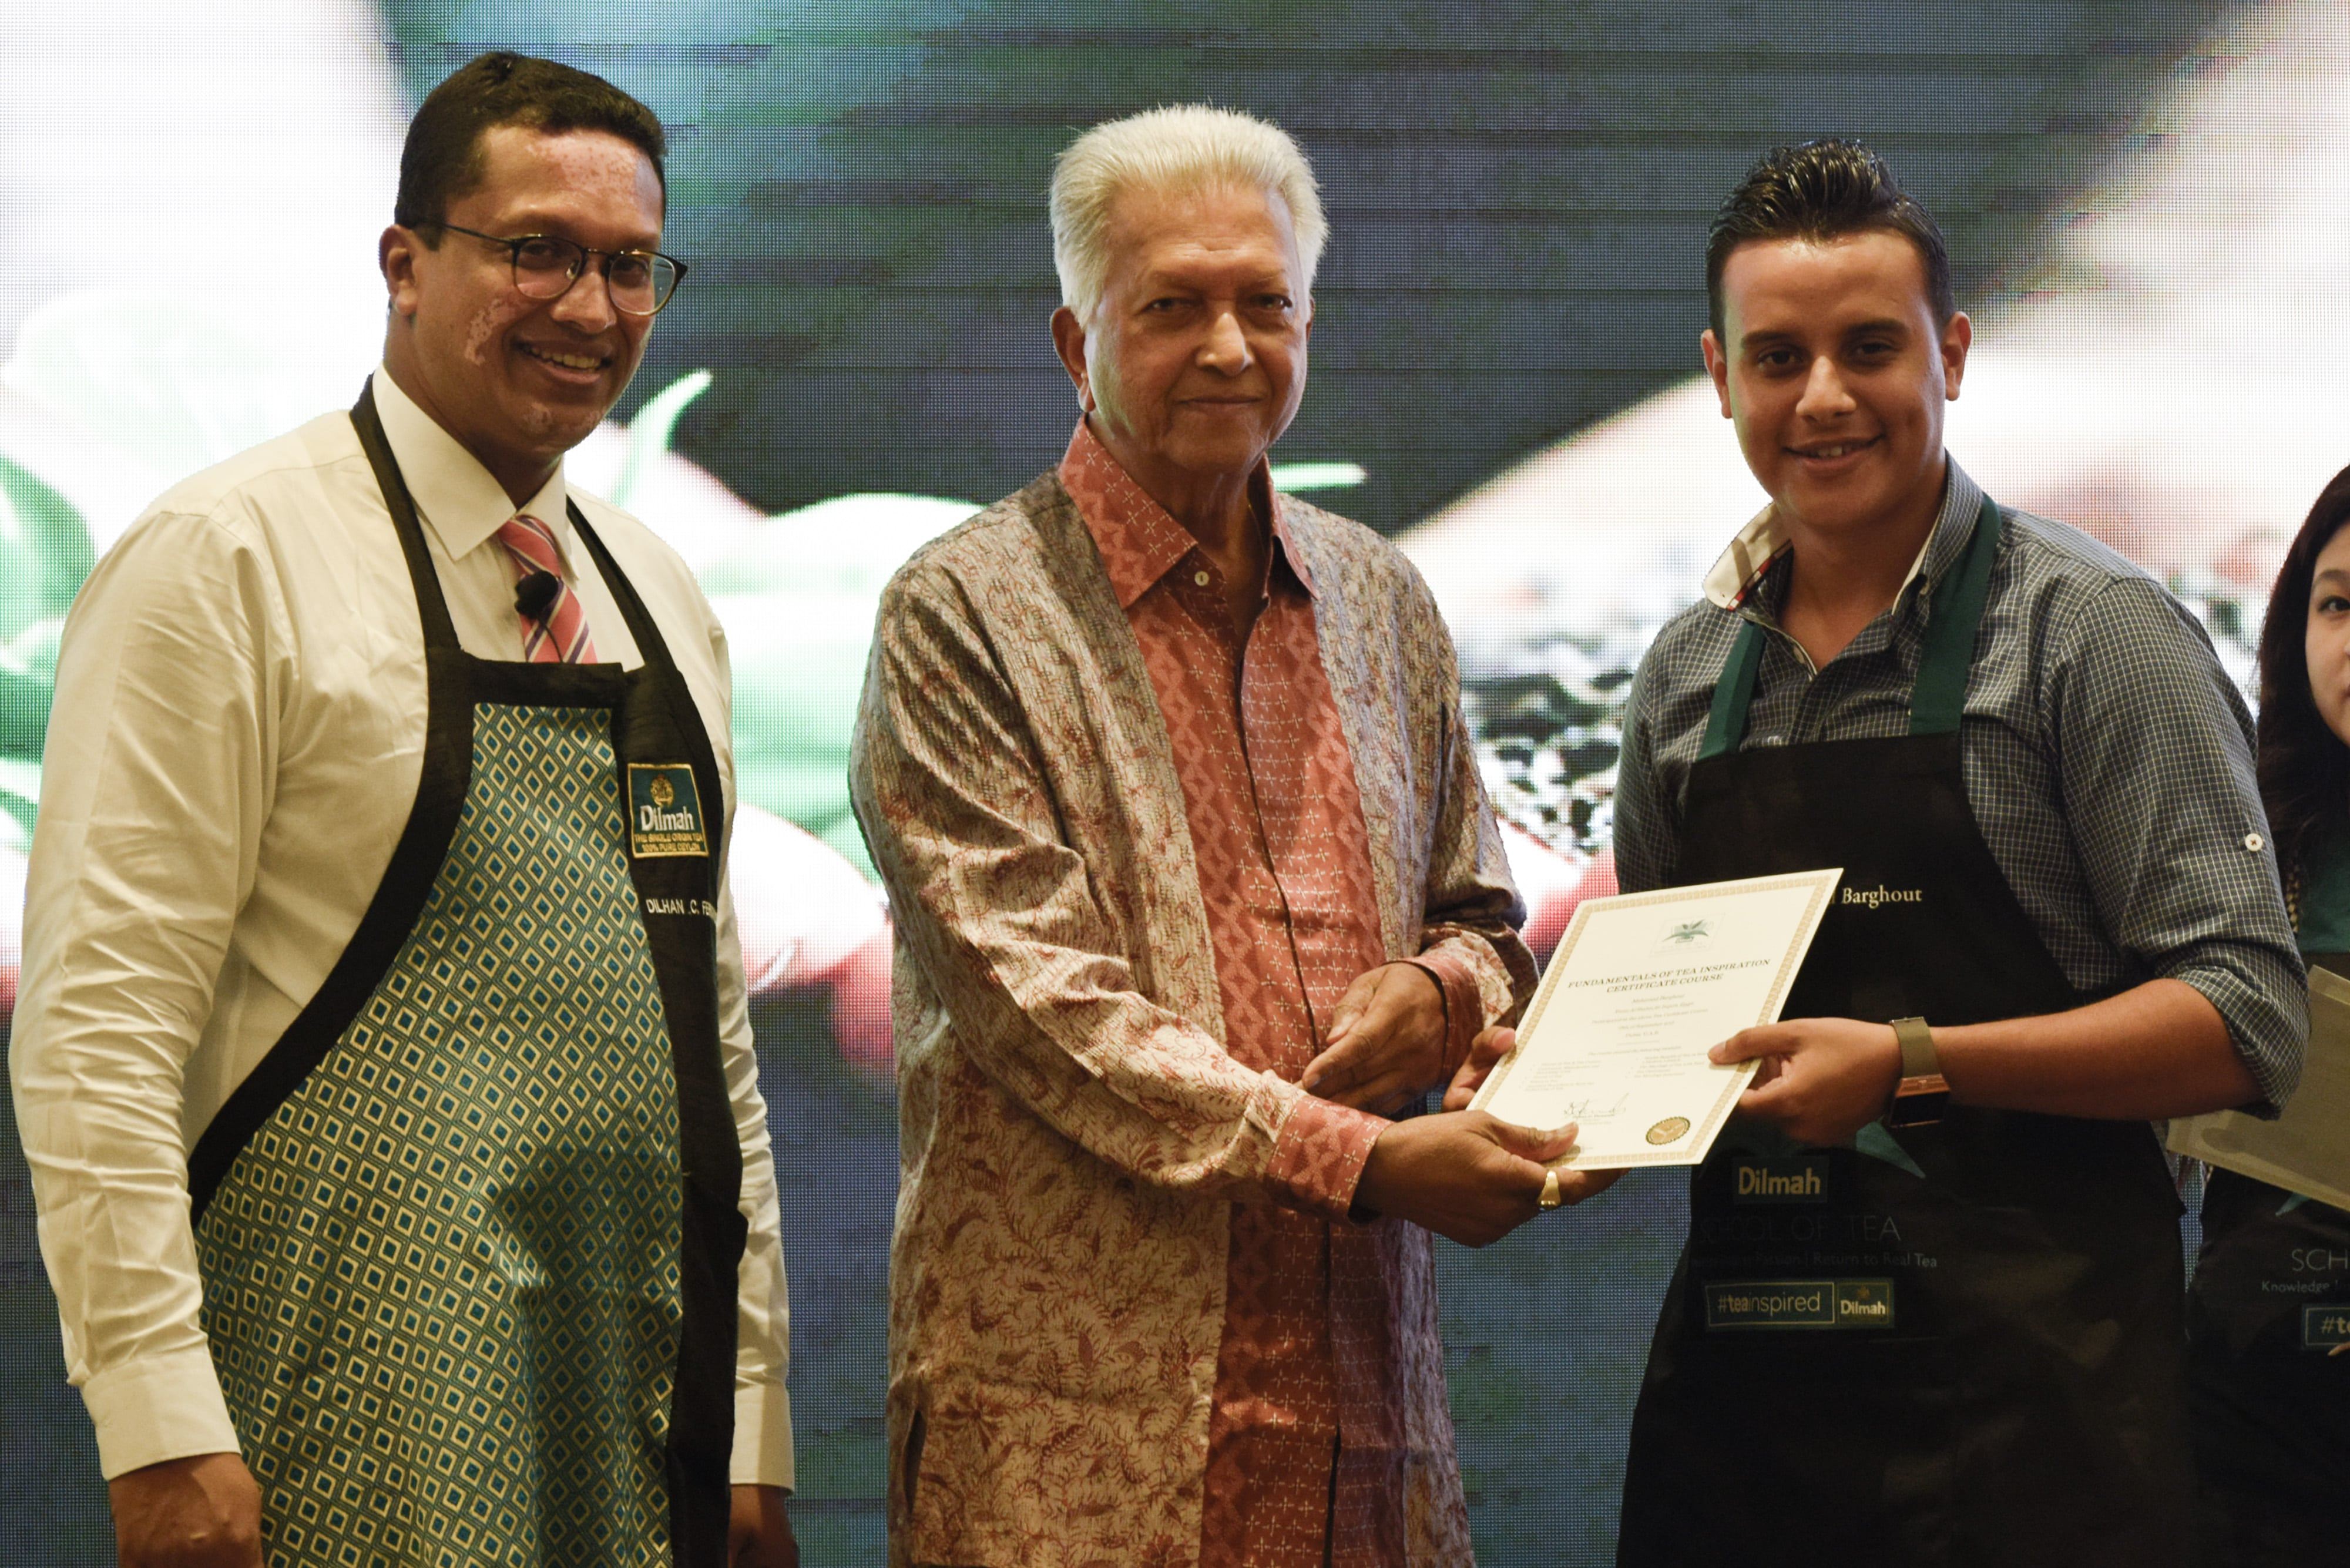 Founder of Dilmah presenting the certificates to the participants